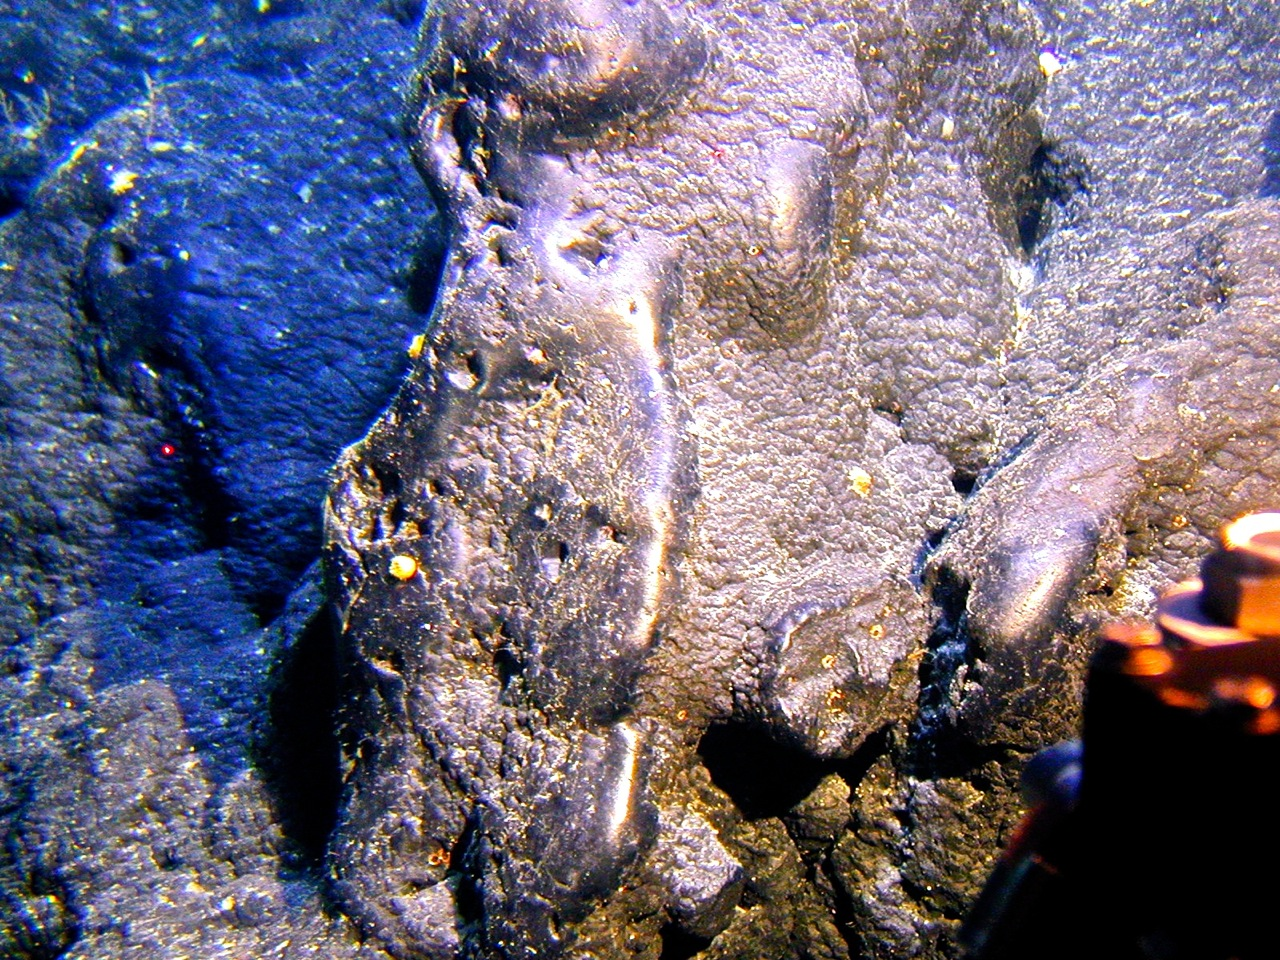 In the 800 to 2,500-meter depth range, manganese and other important minerals precipitate out of seawater to form crusts like this one.